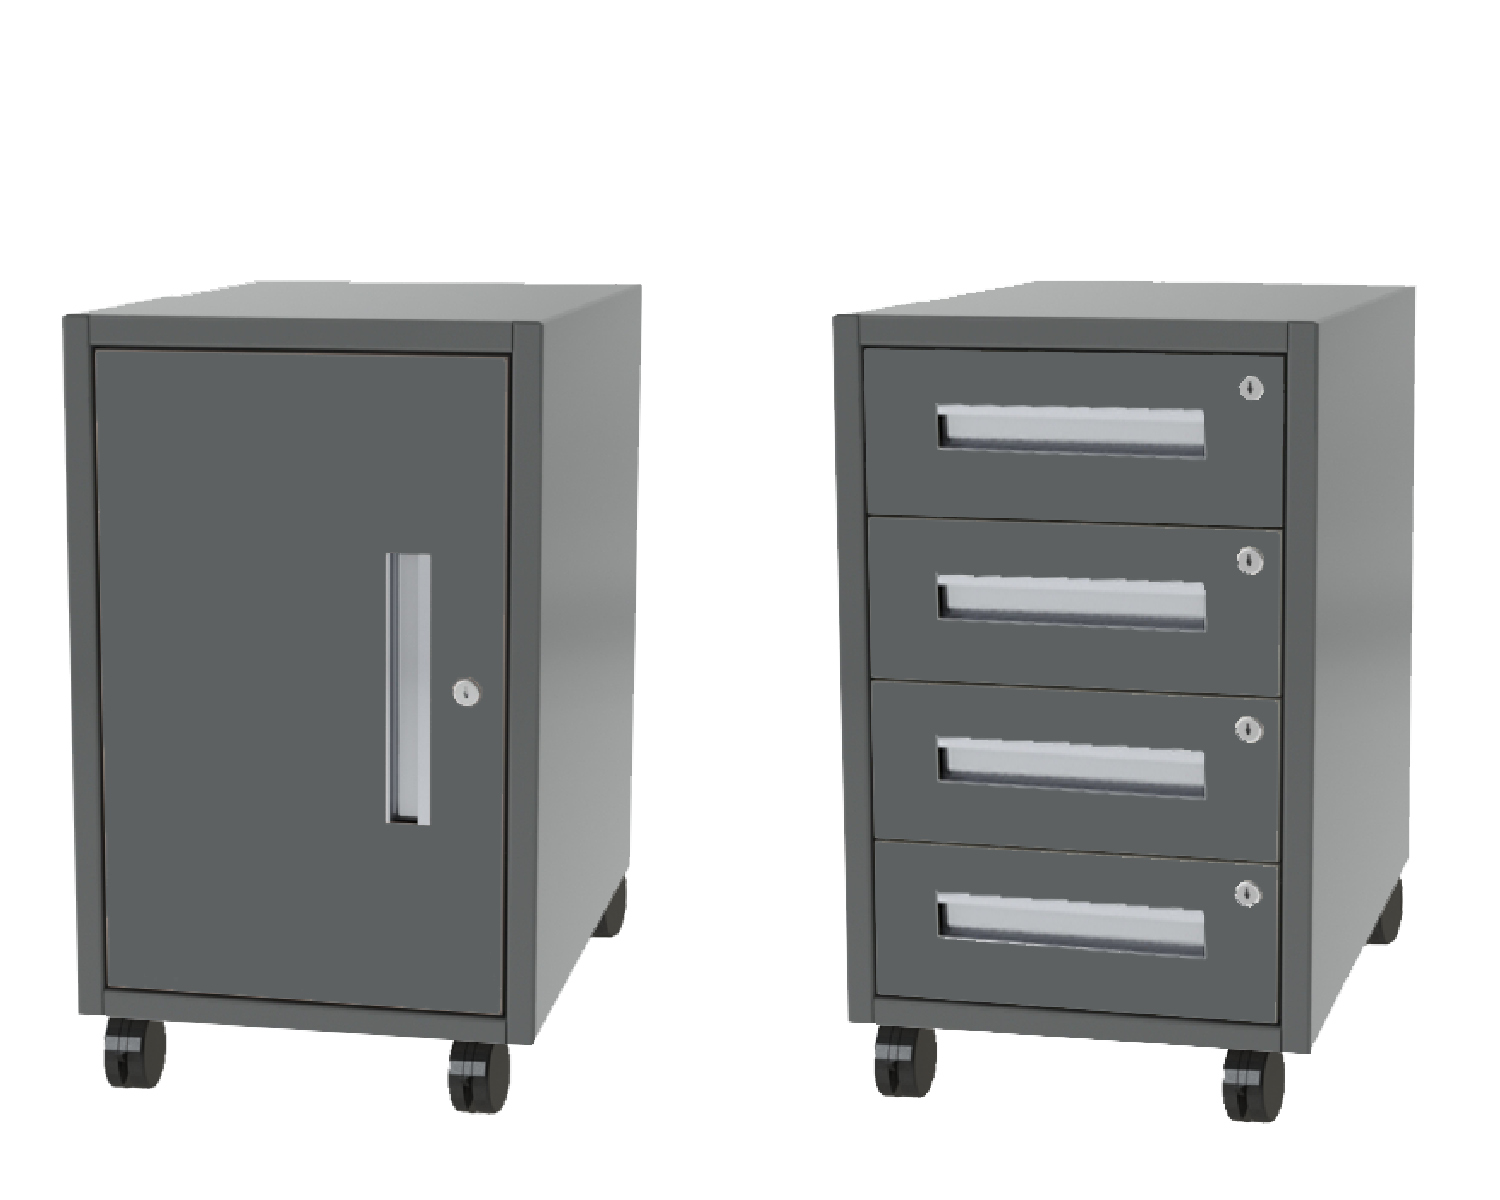 SR Series Portable Cabinets | Greene Manufacturing, Inc.